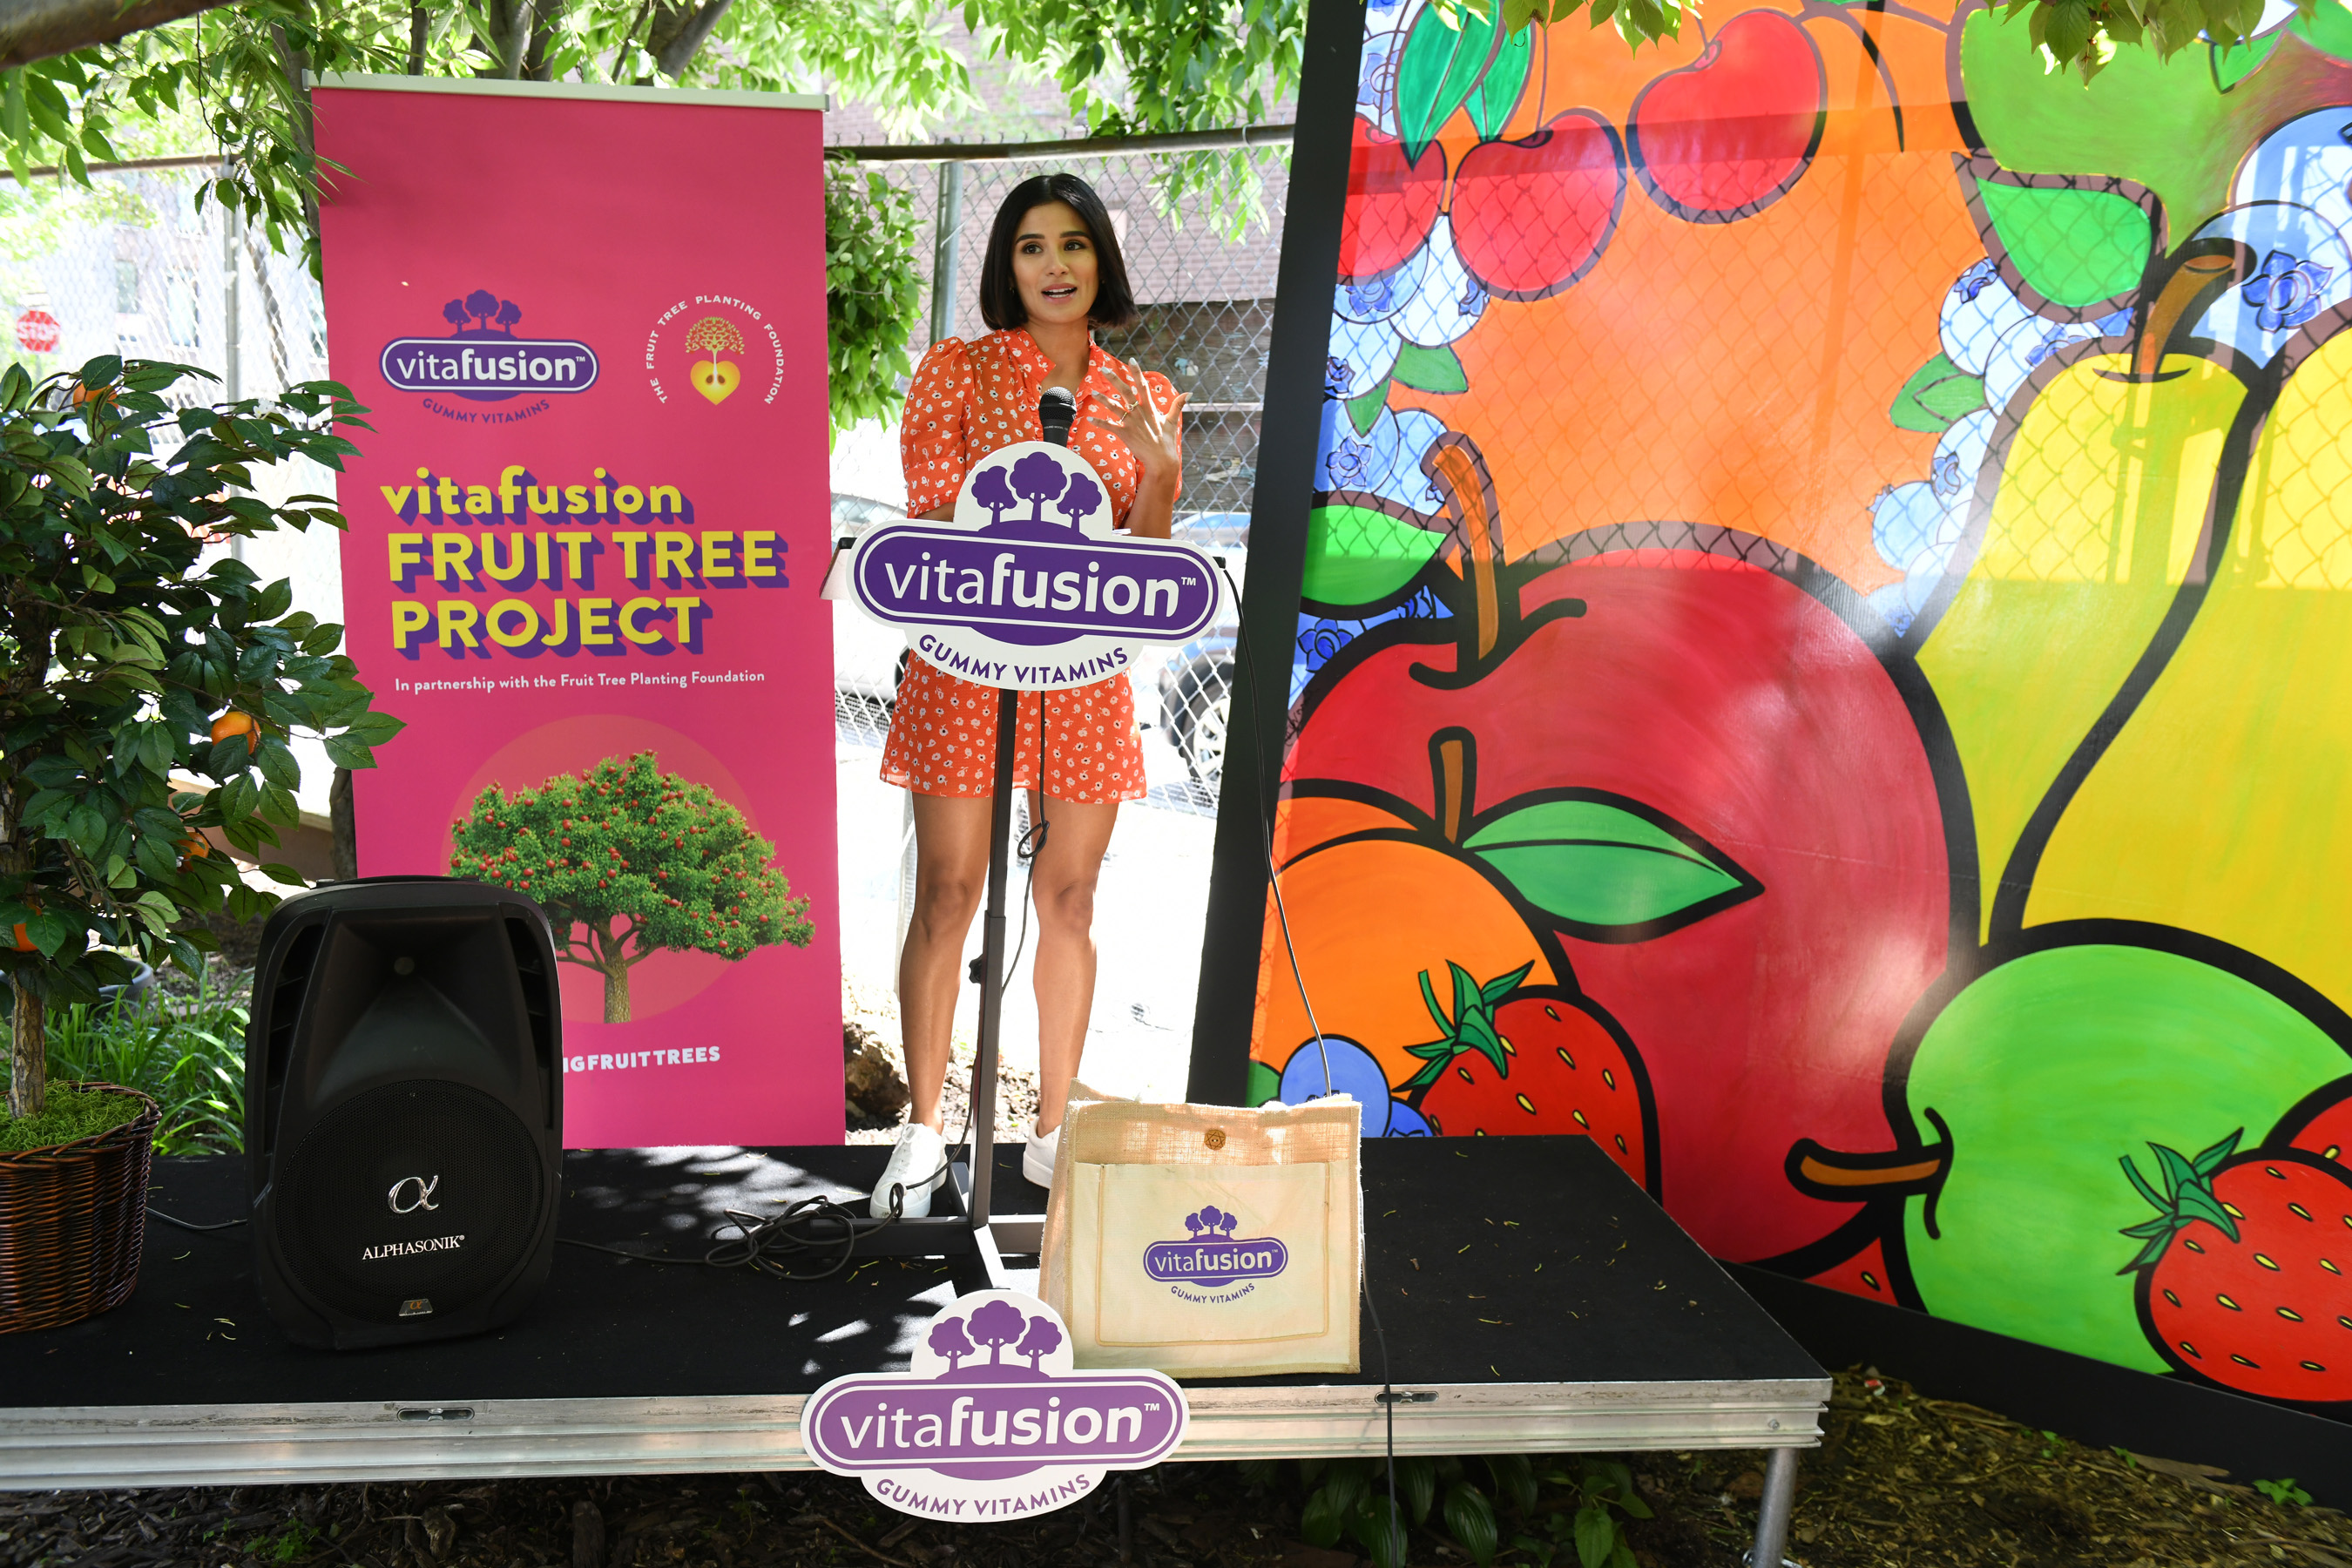 Diane Guerrero discusses why advocating for good, fruitful nutrition is one of her top priorities.